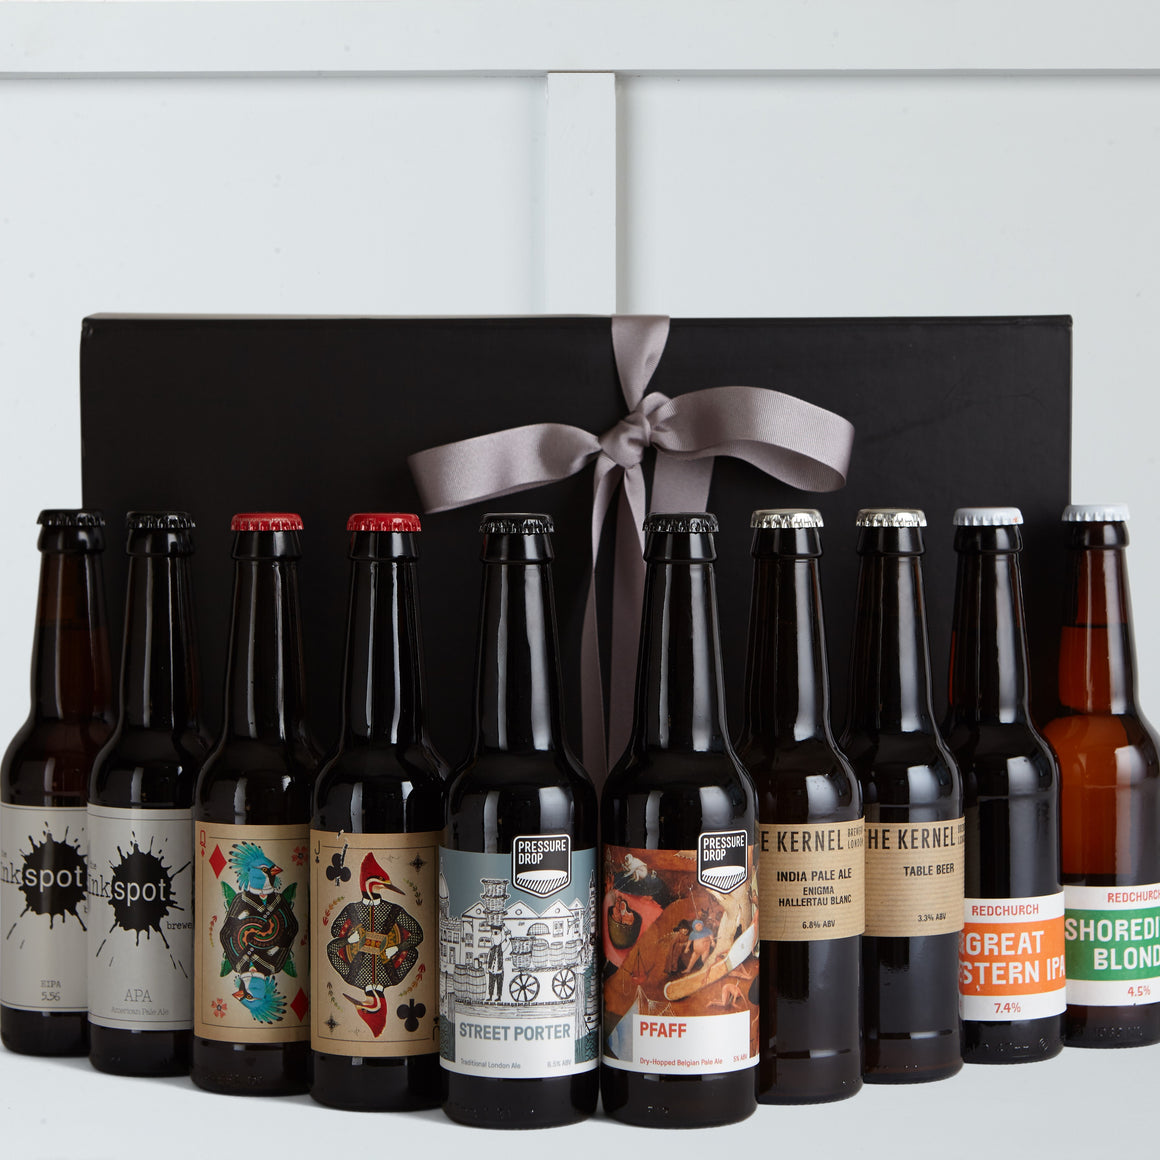 Ten craft bottle beers from some of the best London micro breweries